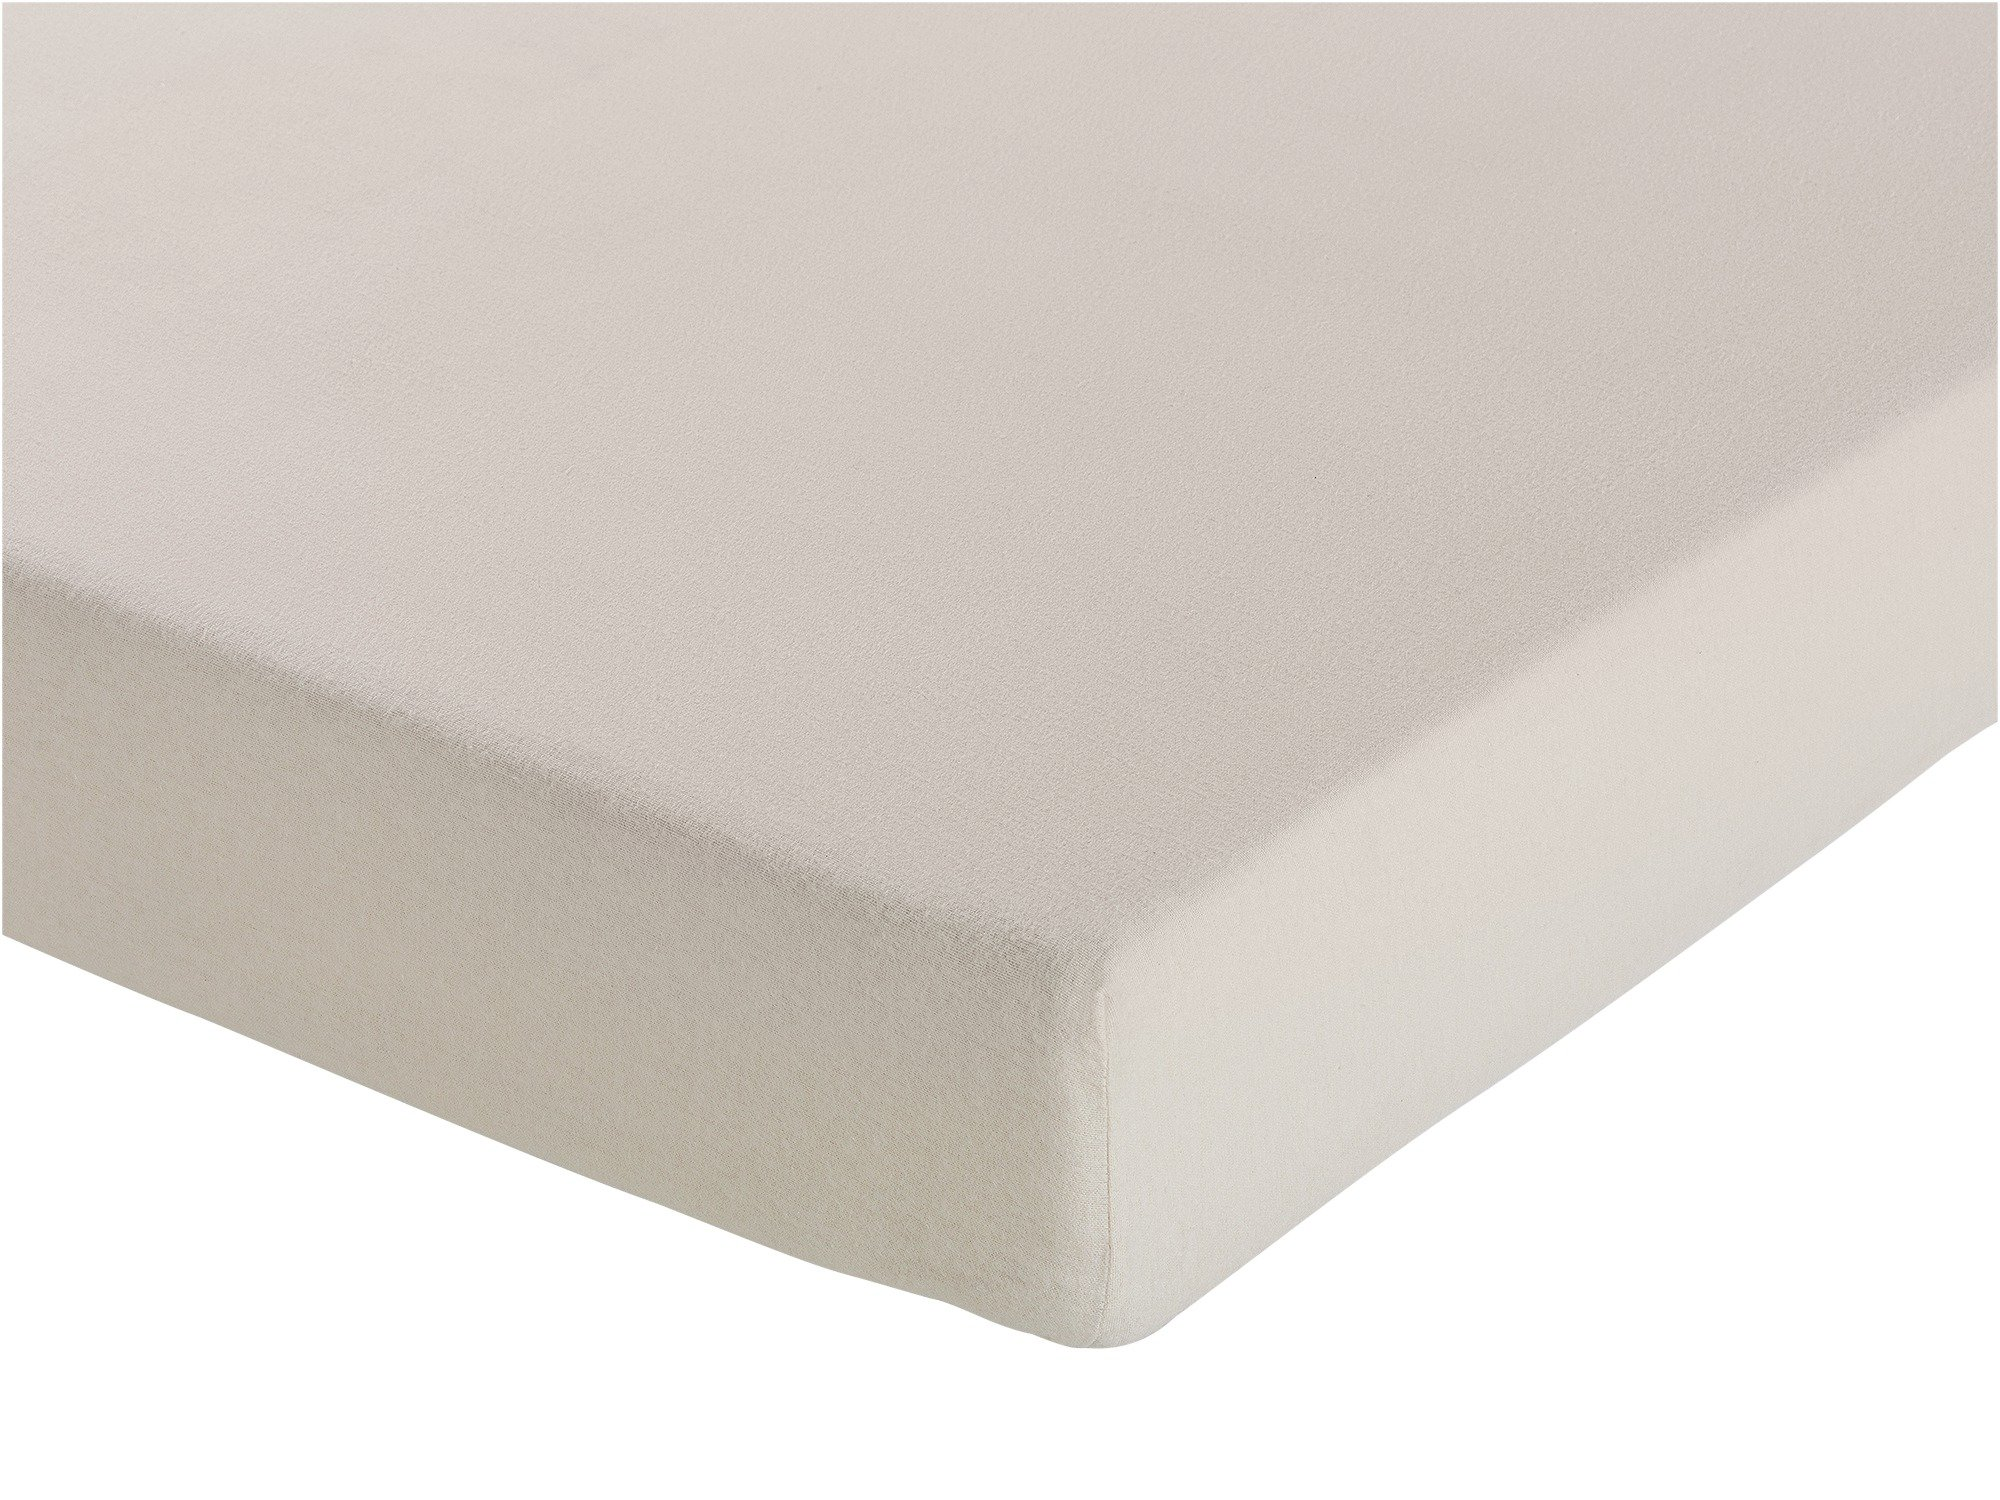 Collection - Cream Brushed Cotton Fitted - Sheet - Kingsize